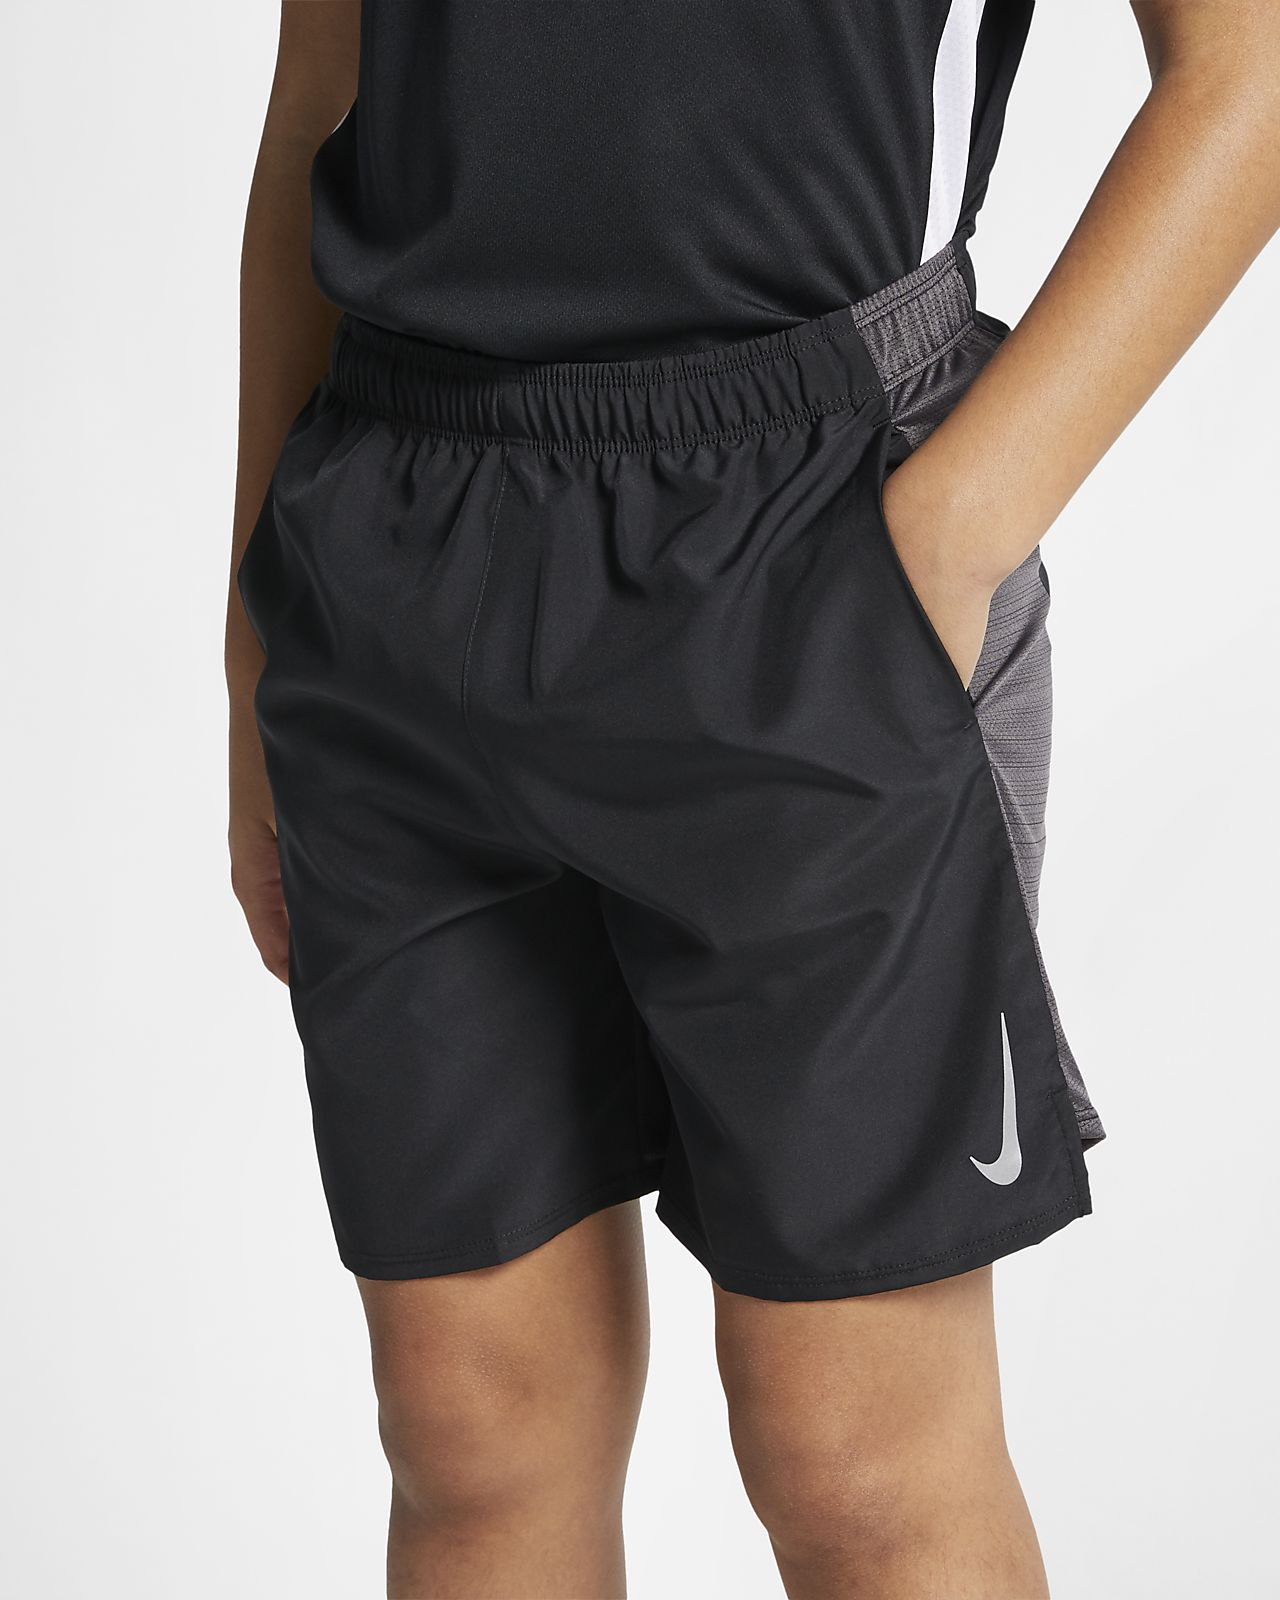 Nike Big Kids' (Boys') Training Shorts